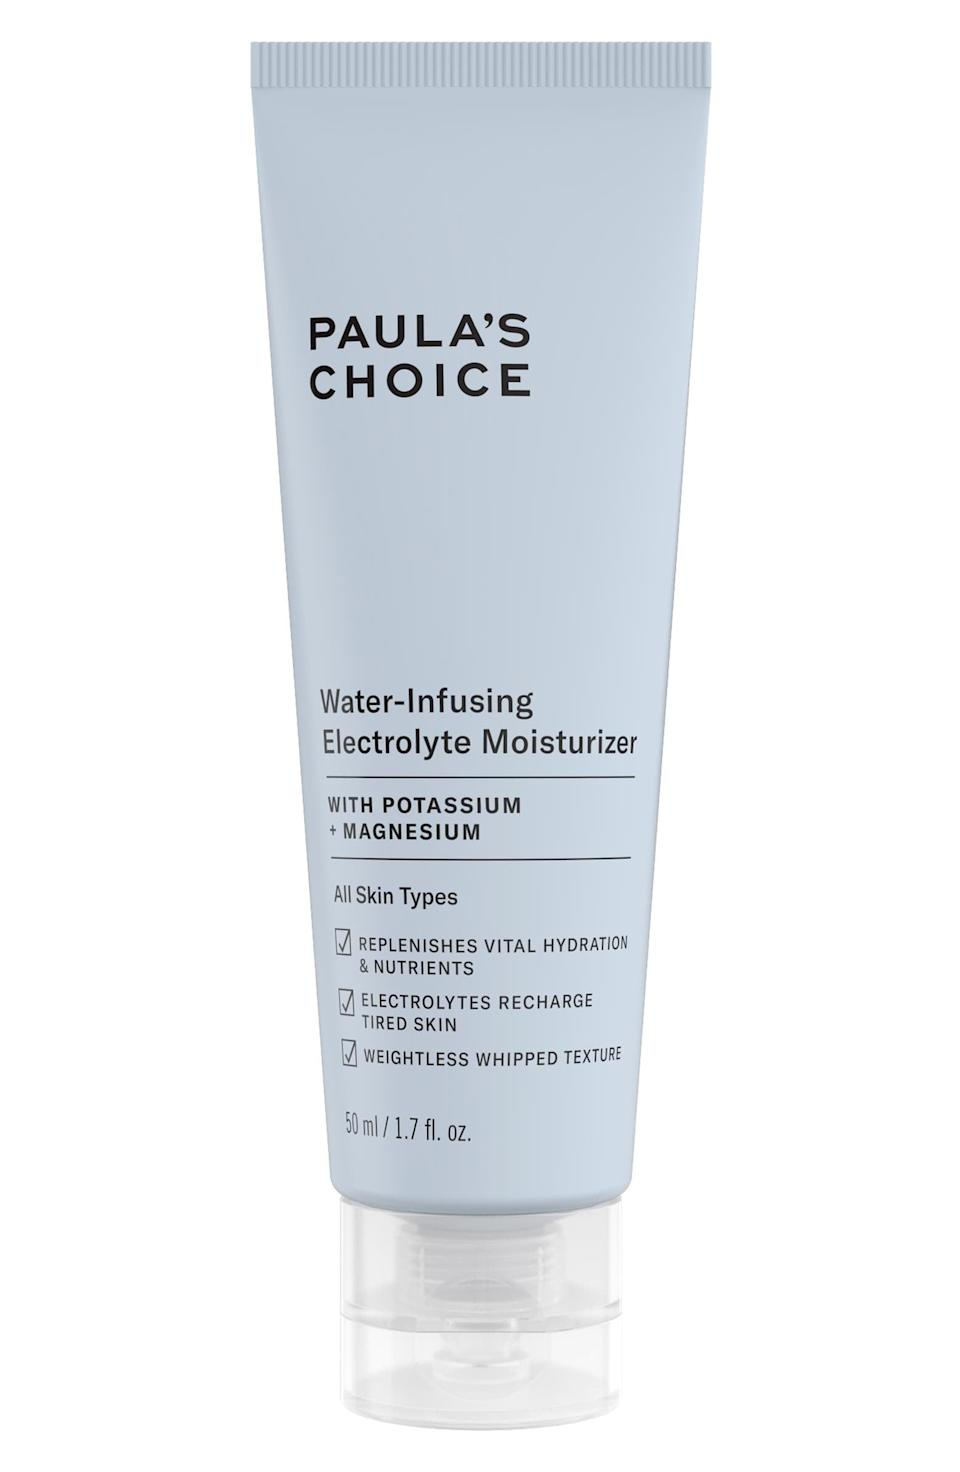 """<p>A personal favorite of several POPSUGAR editors (especially during the warmer months since it's supremely lightweight), the <span>Paula's Choice Water-Infusing Electrolyte Moisturizer</span> ($35) also has a few makeup artist fans. """"I love Paula's Choice skincare all around,"""" said makeup artist Quinn Murphy, who works with loads of celebrities including Lily Aldridge, Nathalie Emmanuel, Sophie Turner, Sofia Vergara, <a class=""""link rapid-noclick-resp"""" href=""""https://www.popsugar.co.uk/Alison-Brie"""" rel=""""nofollow noopener"""" target=""""_blank"""" data-ylk=""""slk:Alison Brie"""">Alison Brie</a>, and Gemma Chan, to name a few. """"Before applying your base, I suggest using the Water Infusing Electrolyte Moisturizer because it's not greasy, so it layers well under makeup. It's also safe for blemish-prone skin but still gives your skin a healthy and dewy finish.""""</p>"""